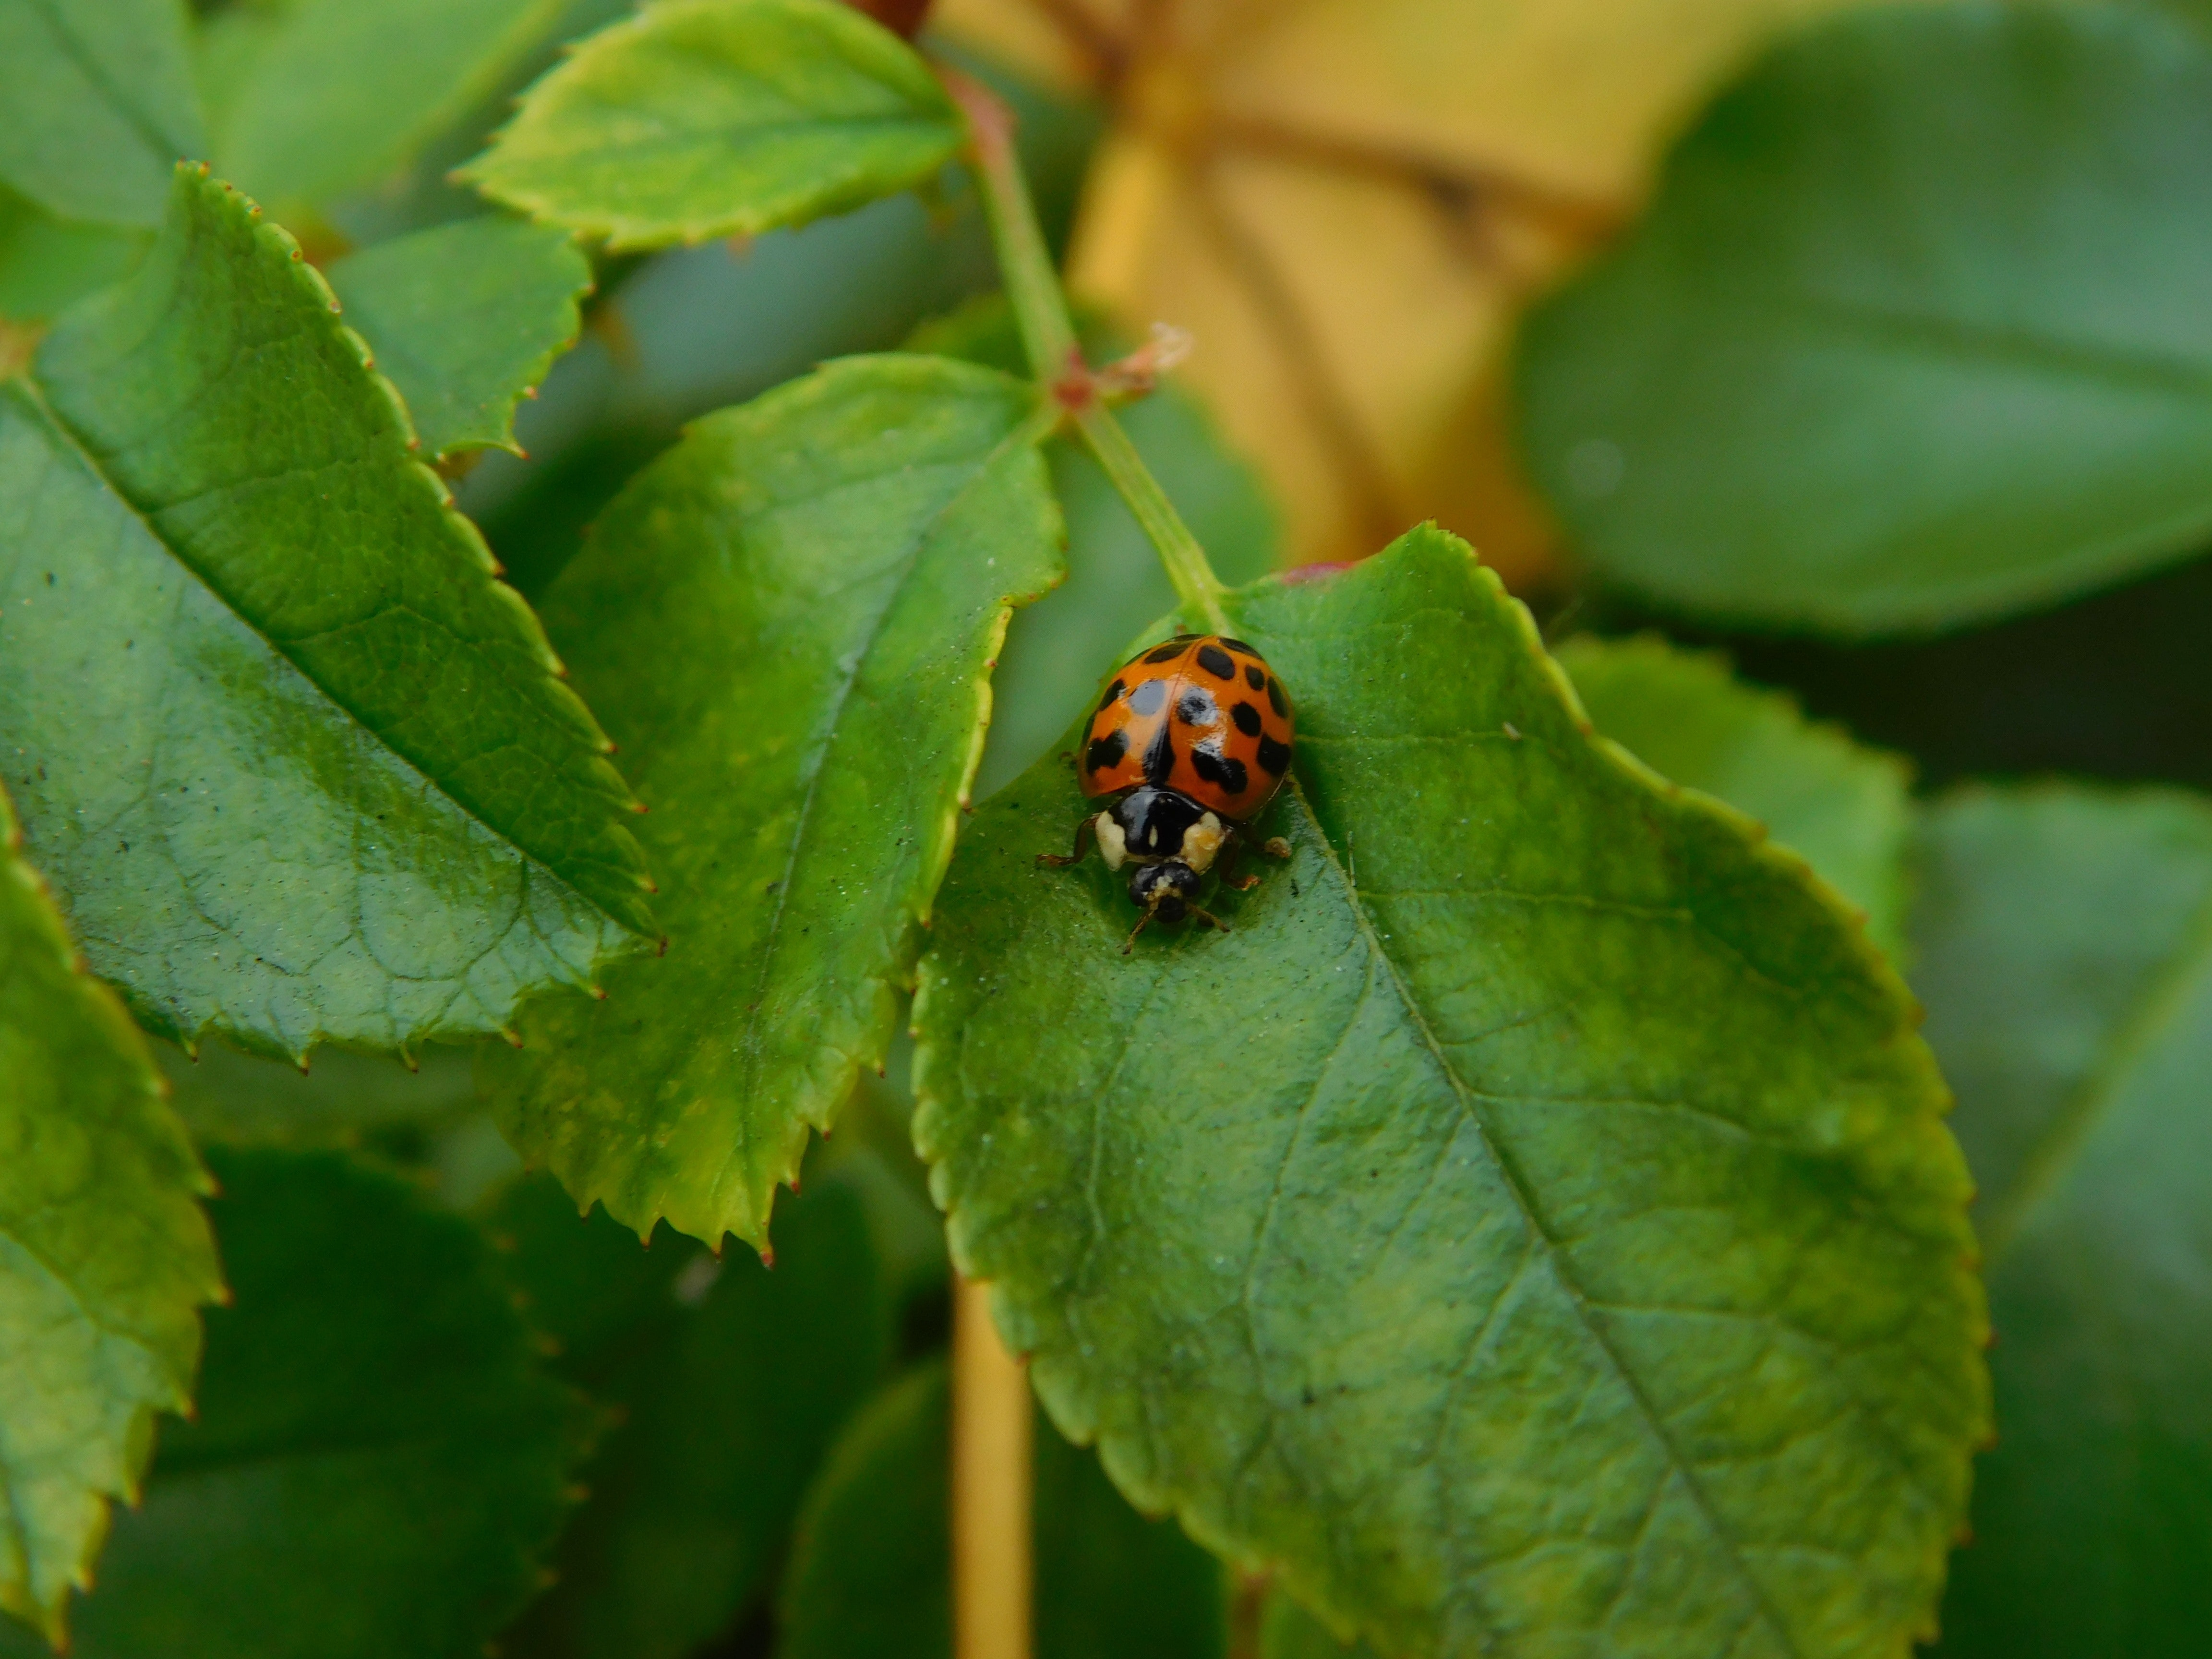 Red Insects On Green Leaves 183 Free Stock Photo